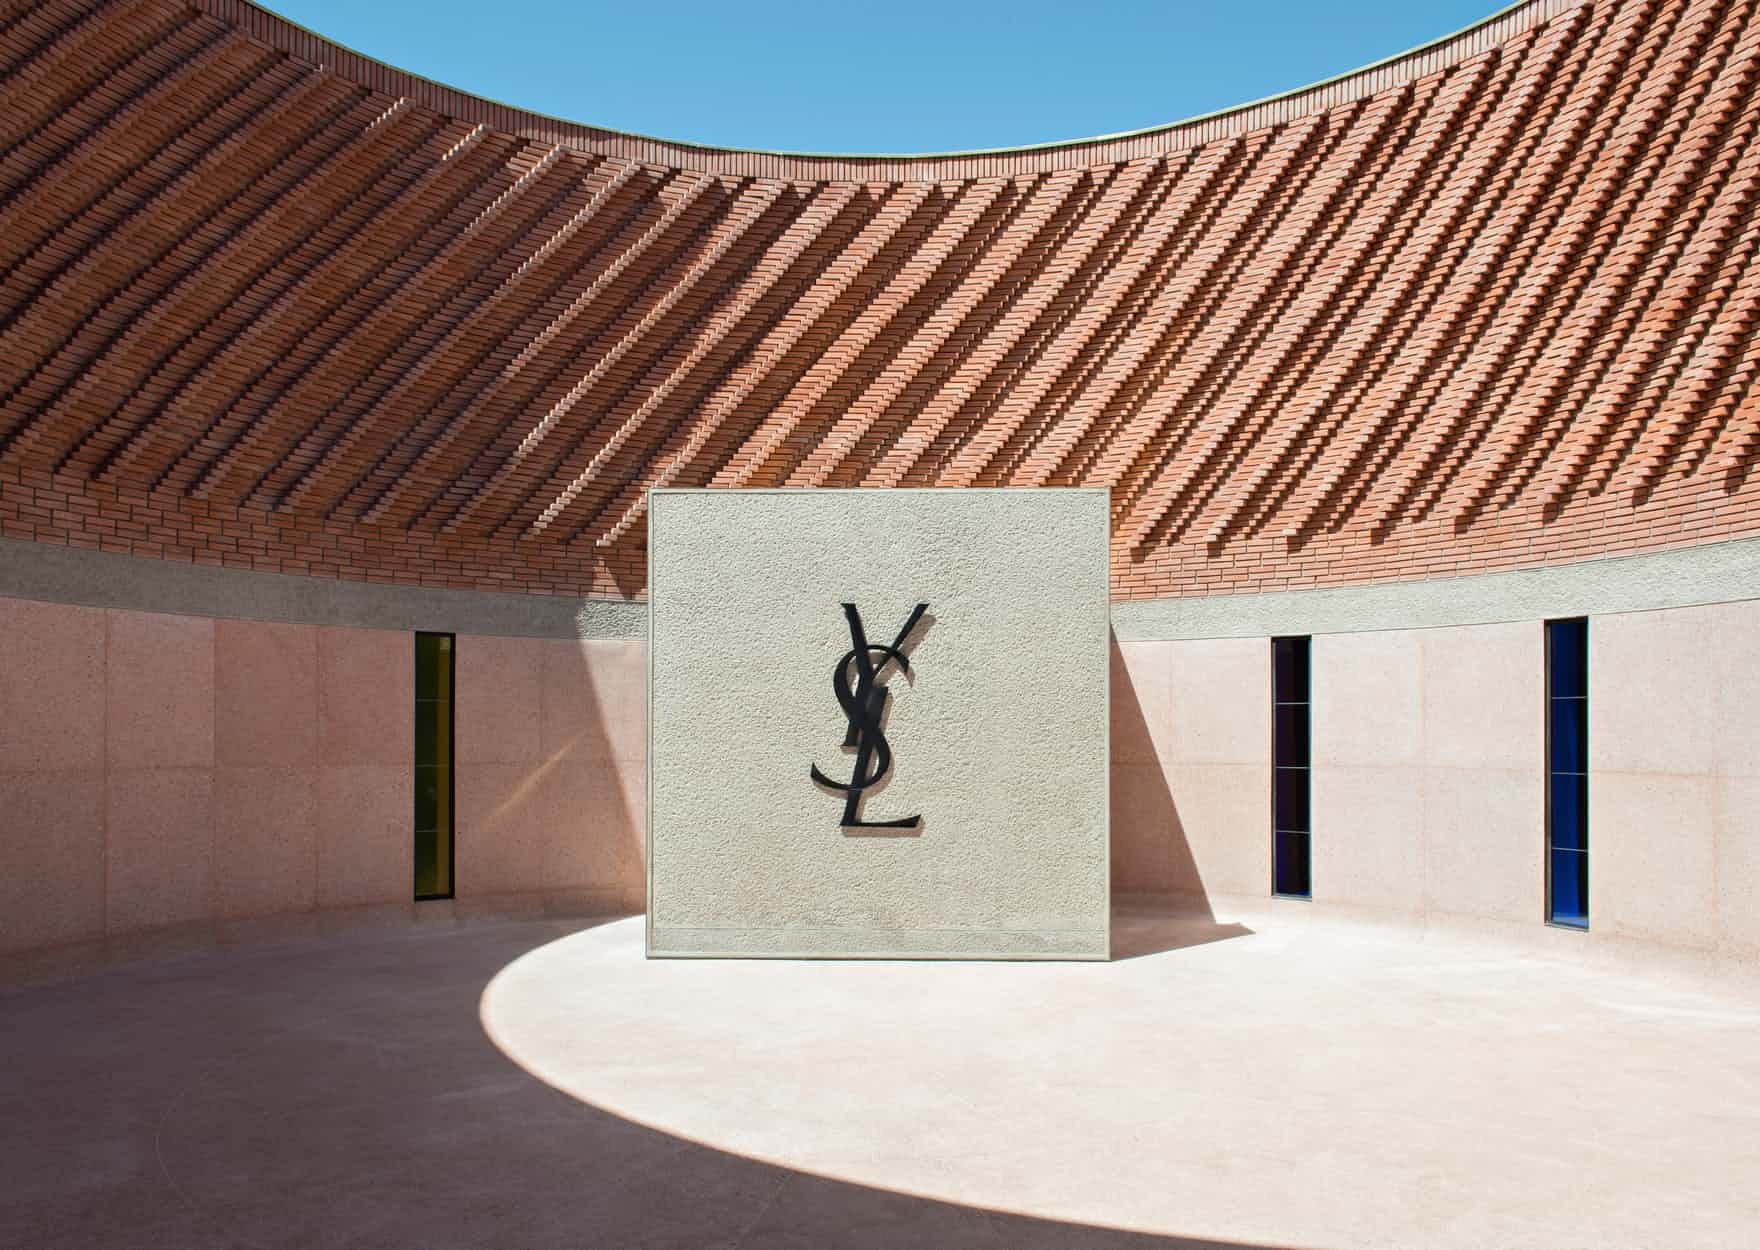 A YSL museum has opened in Marrakech and holds more than 4,000 garments and items.